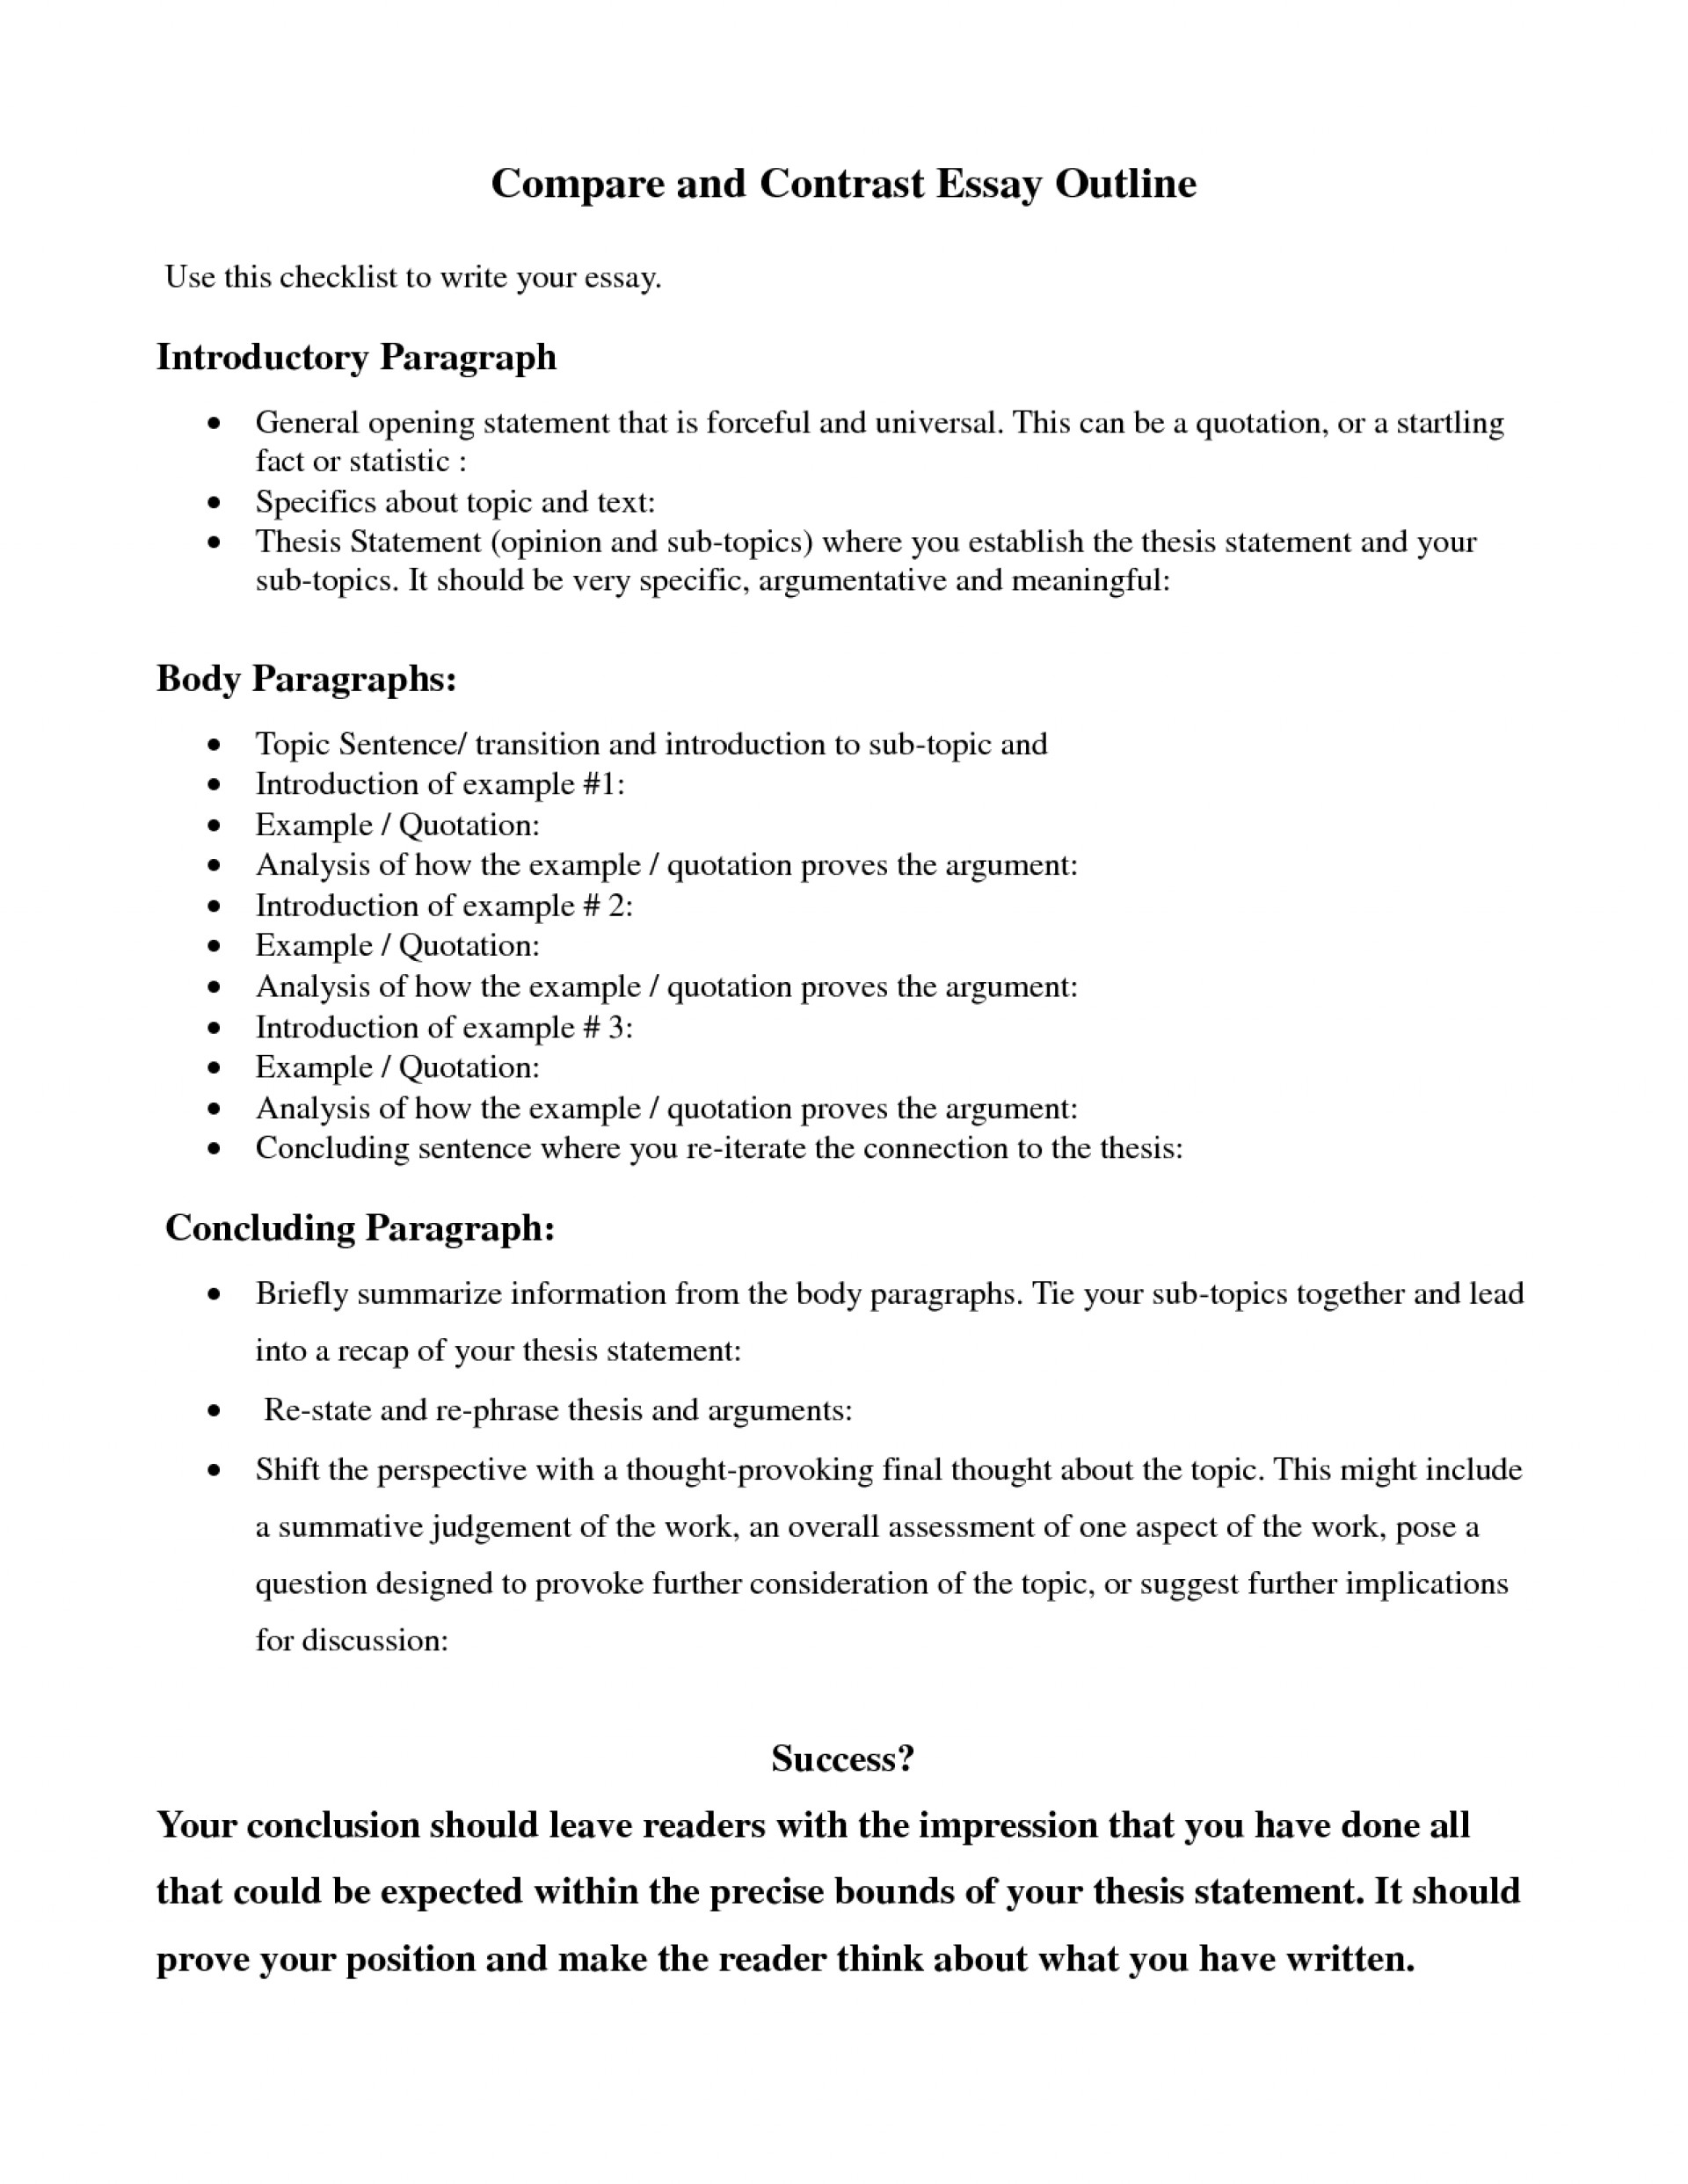 002 Compare And Contrast Essay Template Exceptional For Middle School 8th Grade Examples 1920